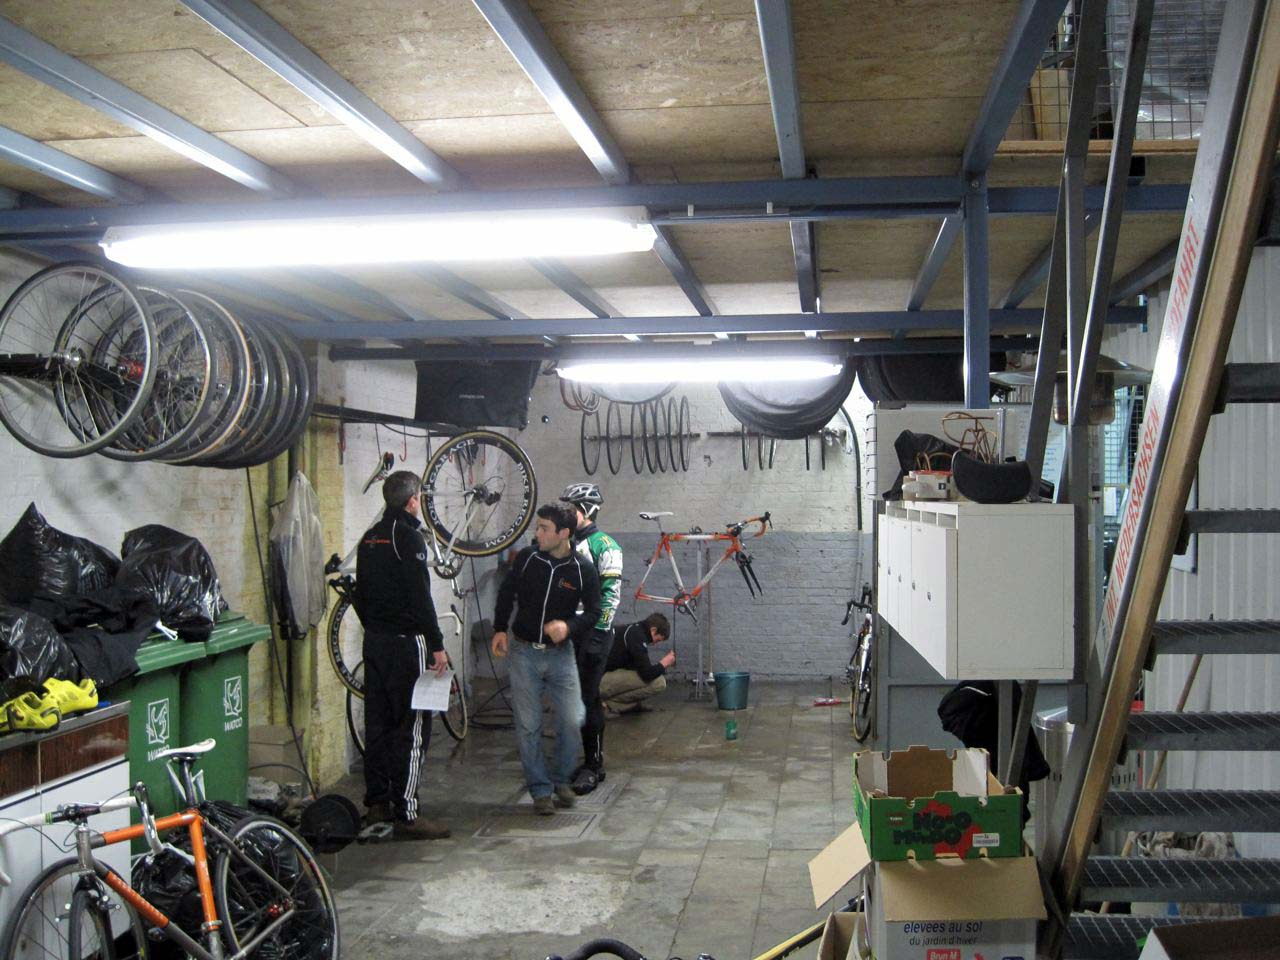 Can you smell the tubular glue? Here\'s one area to work on the bikes. ? Nathan Phillips